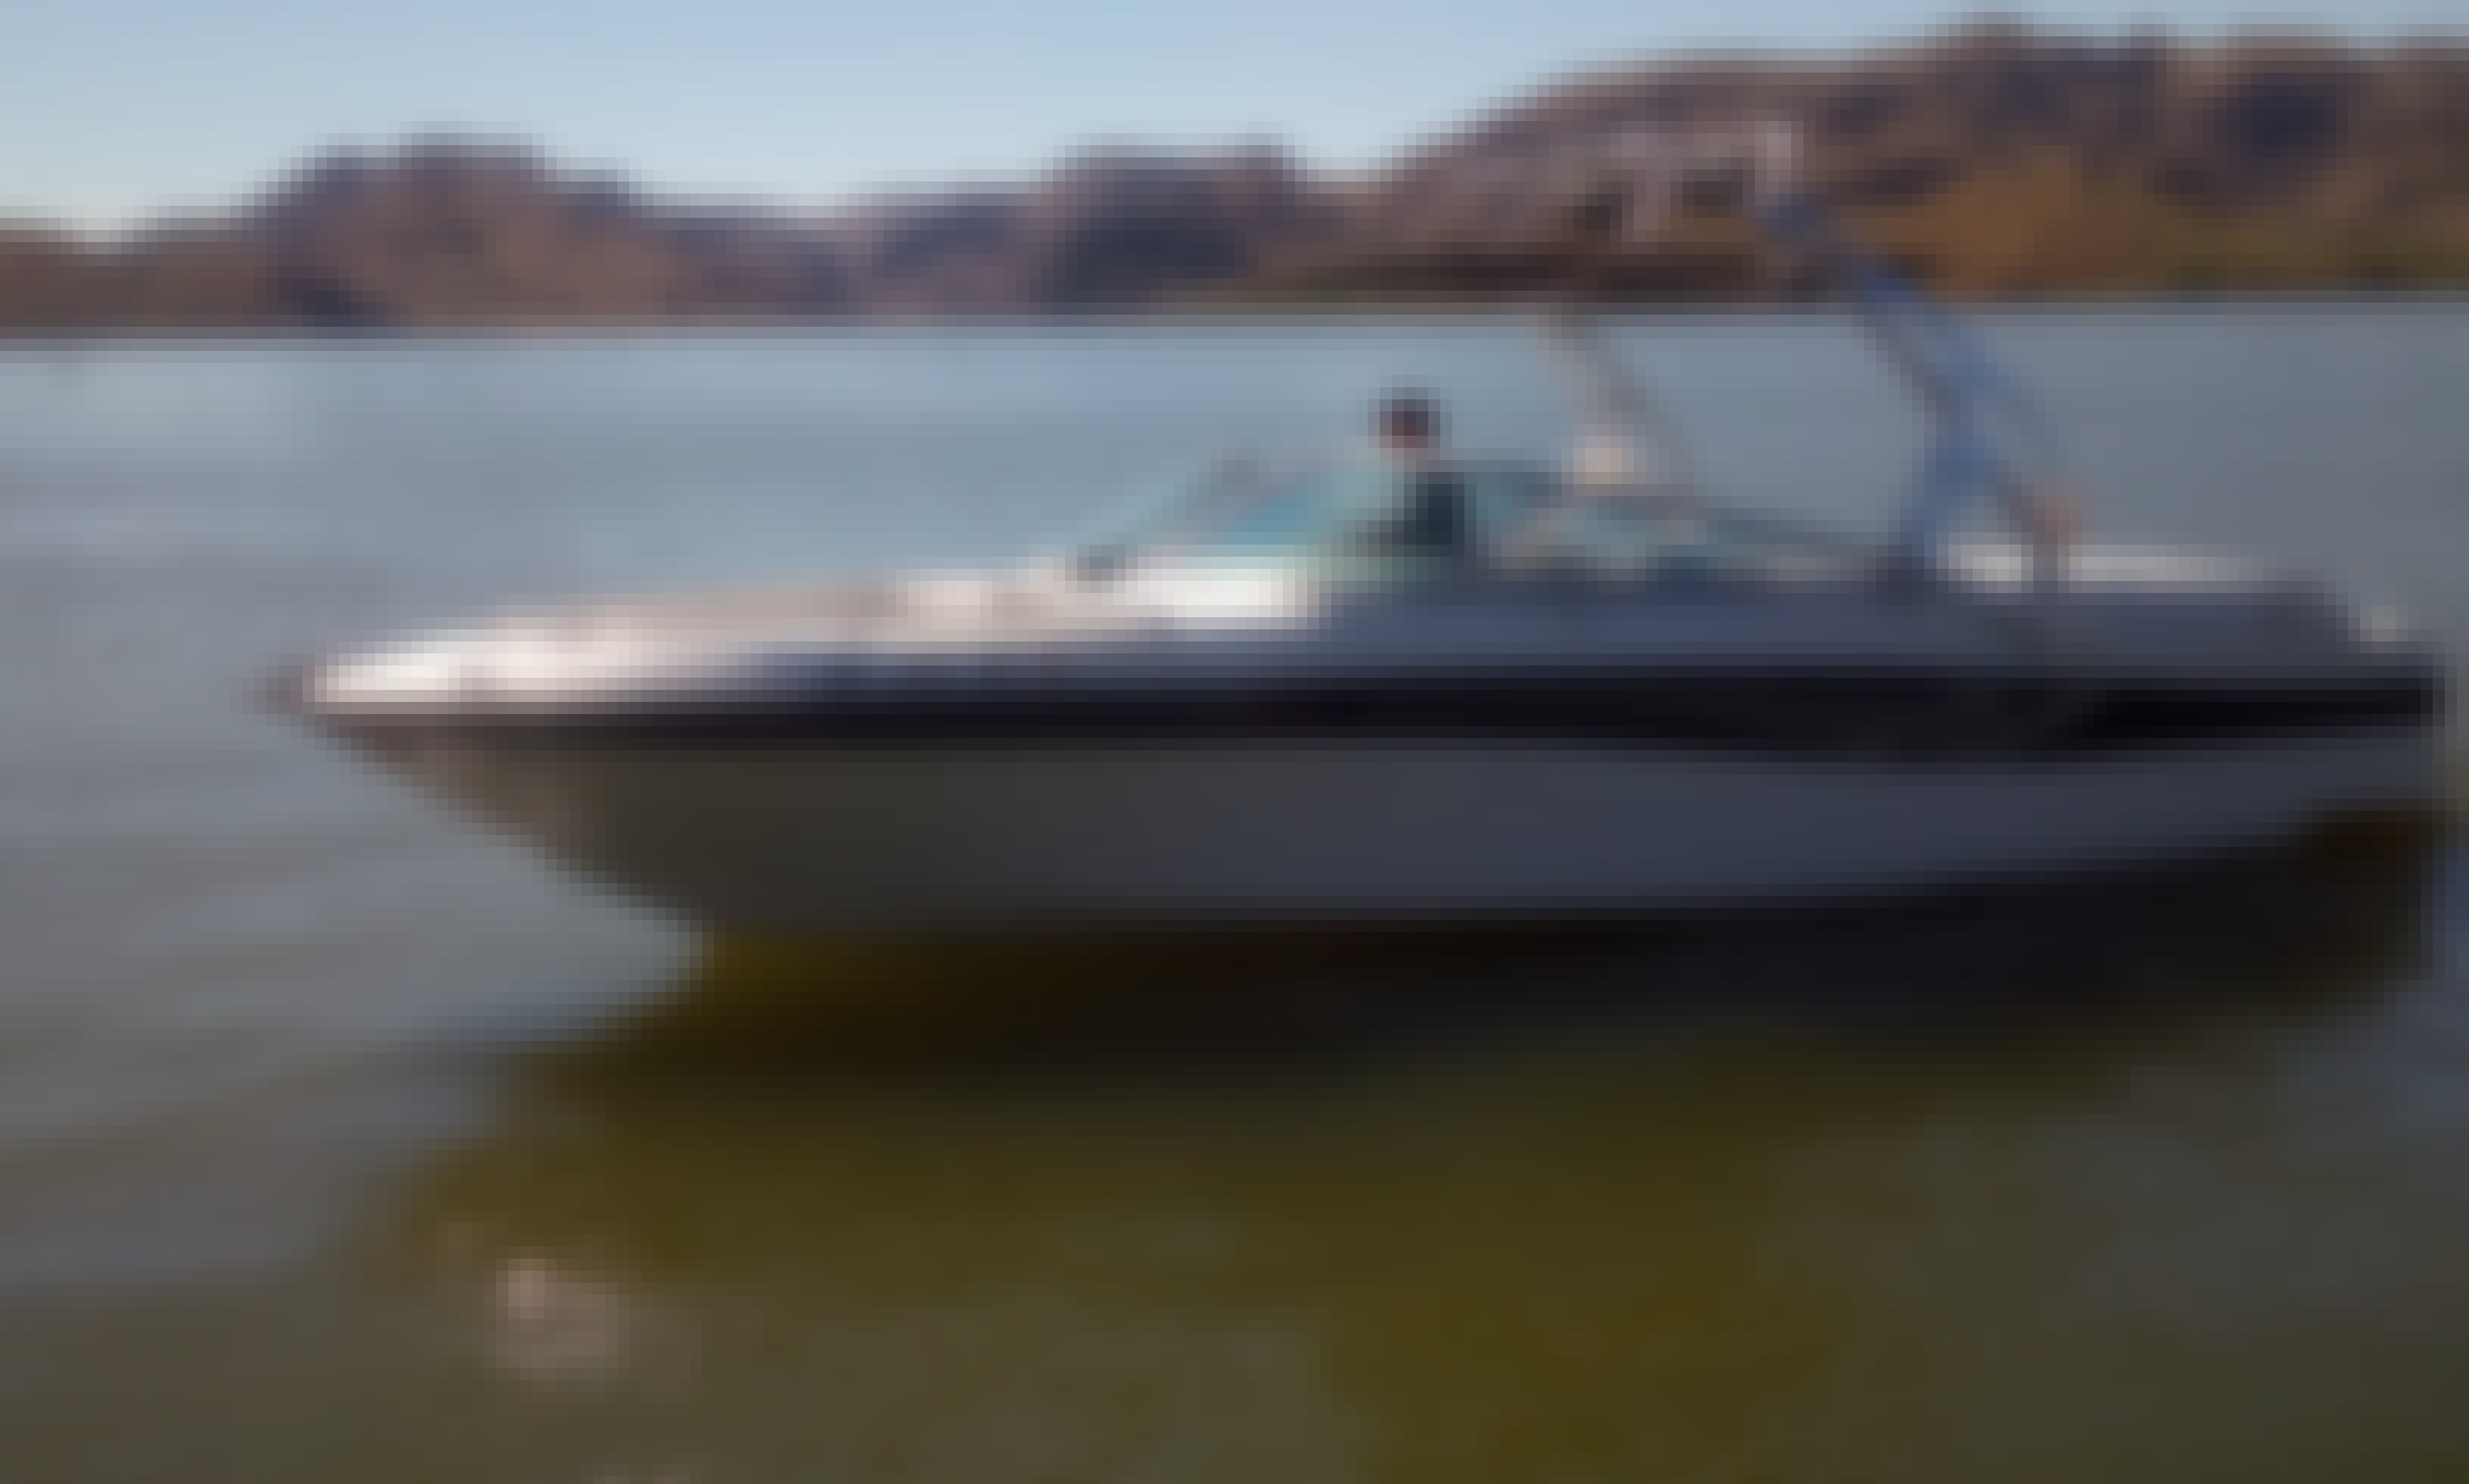 Rent 26' Powerboat for 11 People in Peoria, Arizona